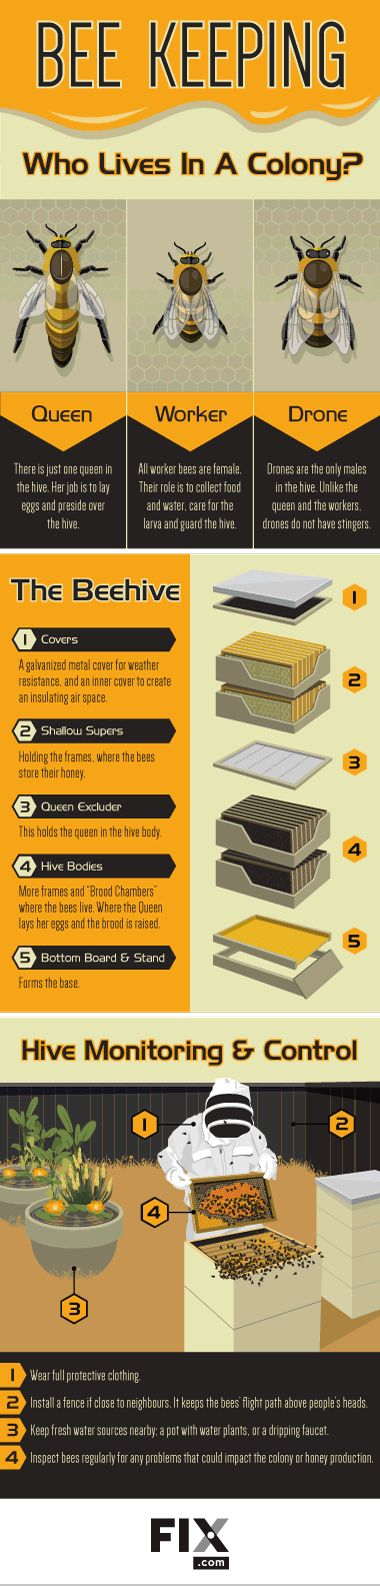 Bee Keeping: Become a Backyard Beekeeper  [by FIX -- via #tipsographic]. More at tipsographic.com: